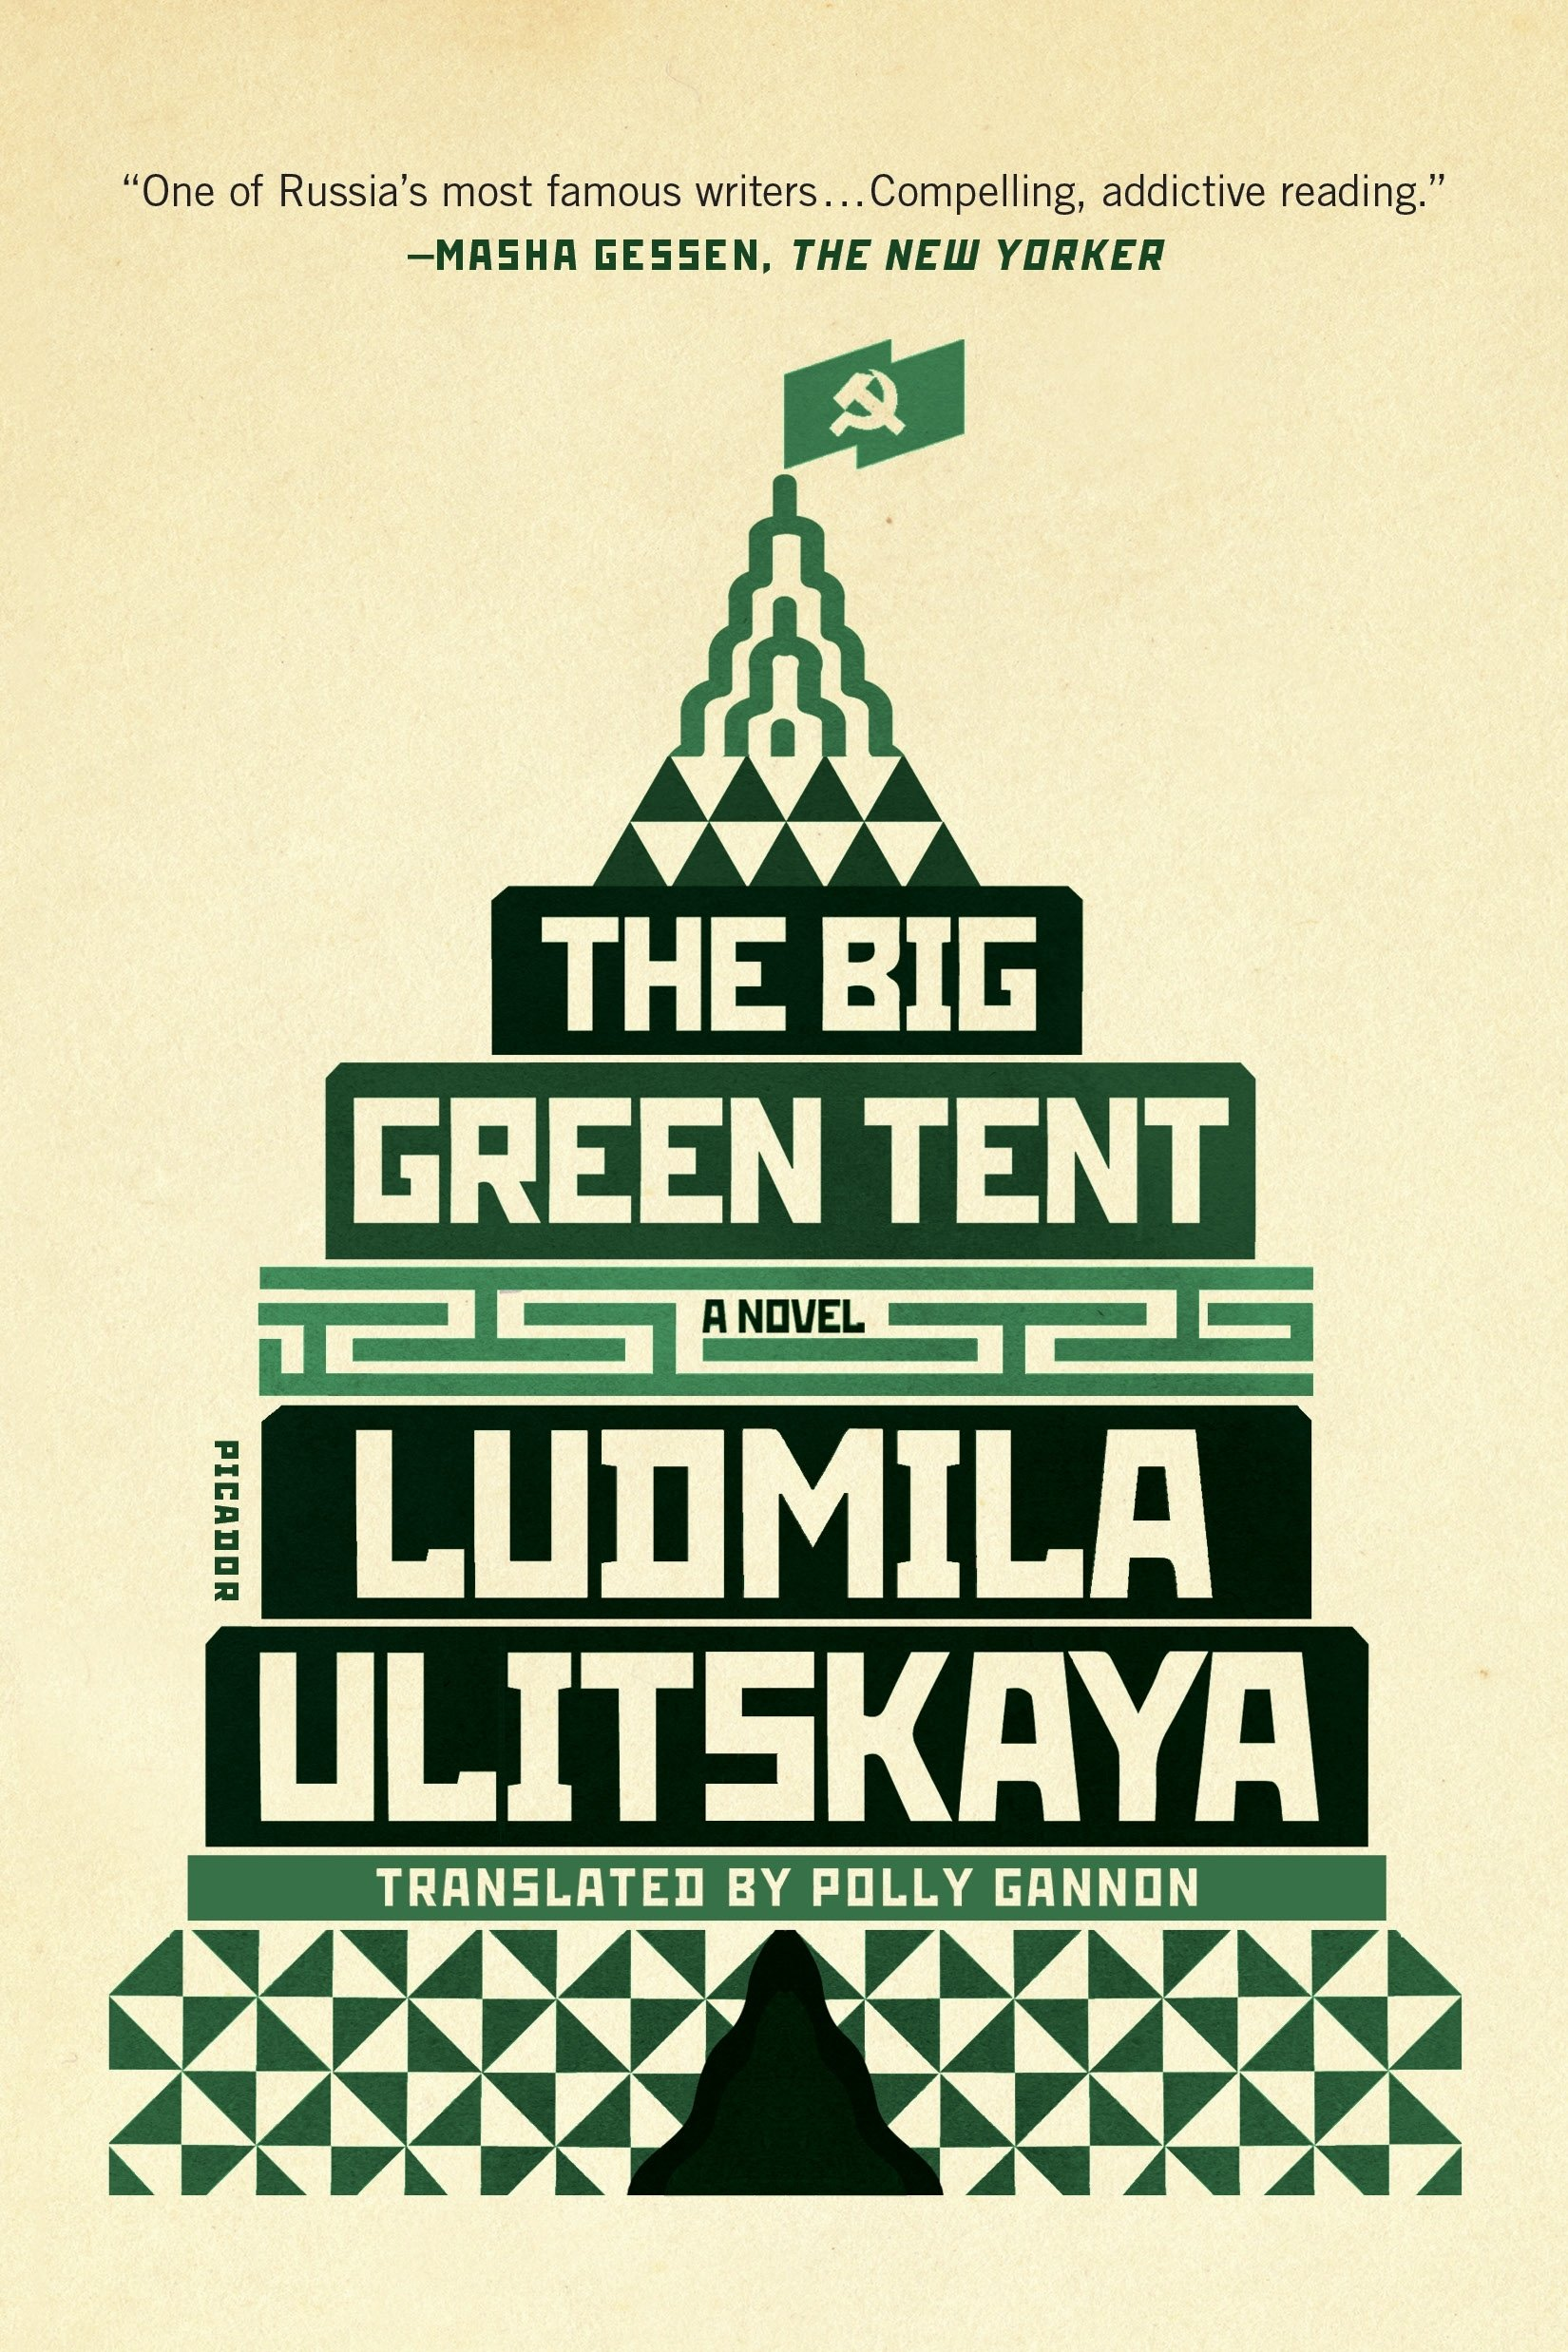 The big green tent goodreads giveaways